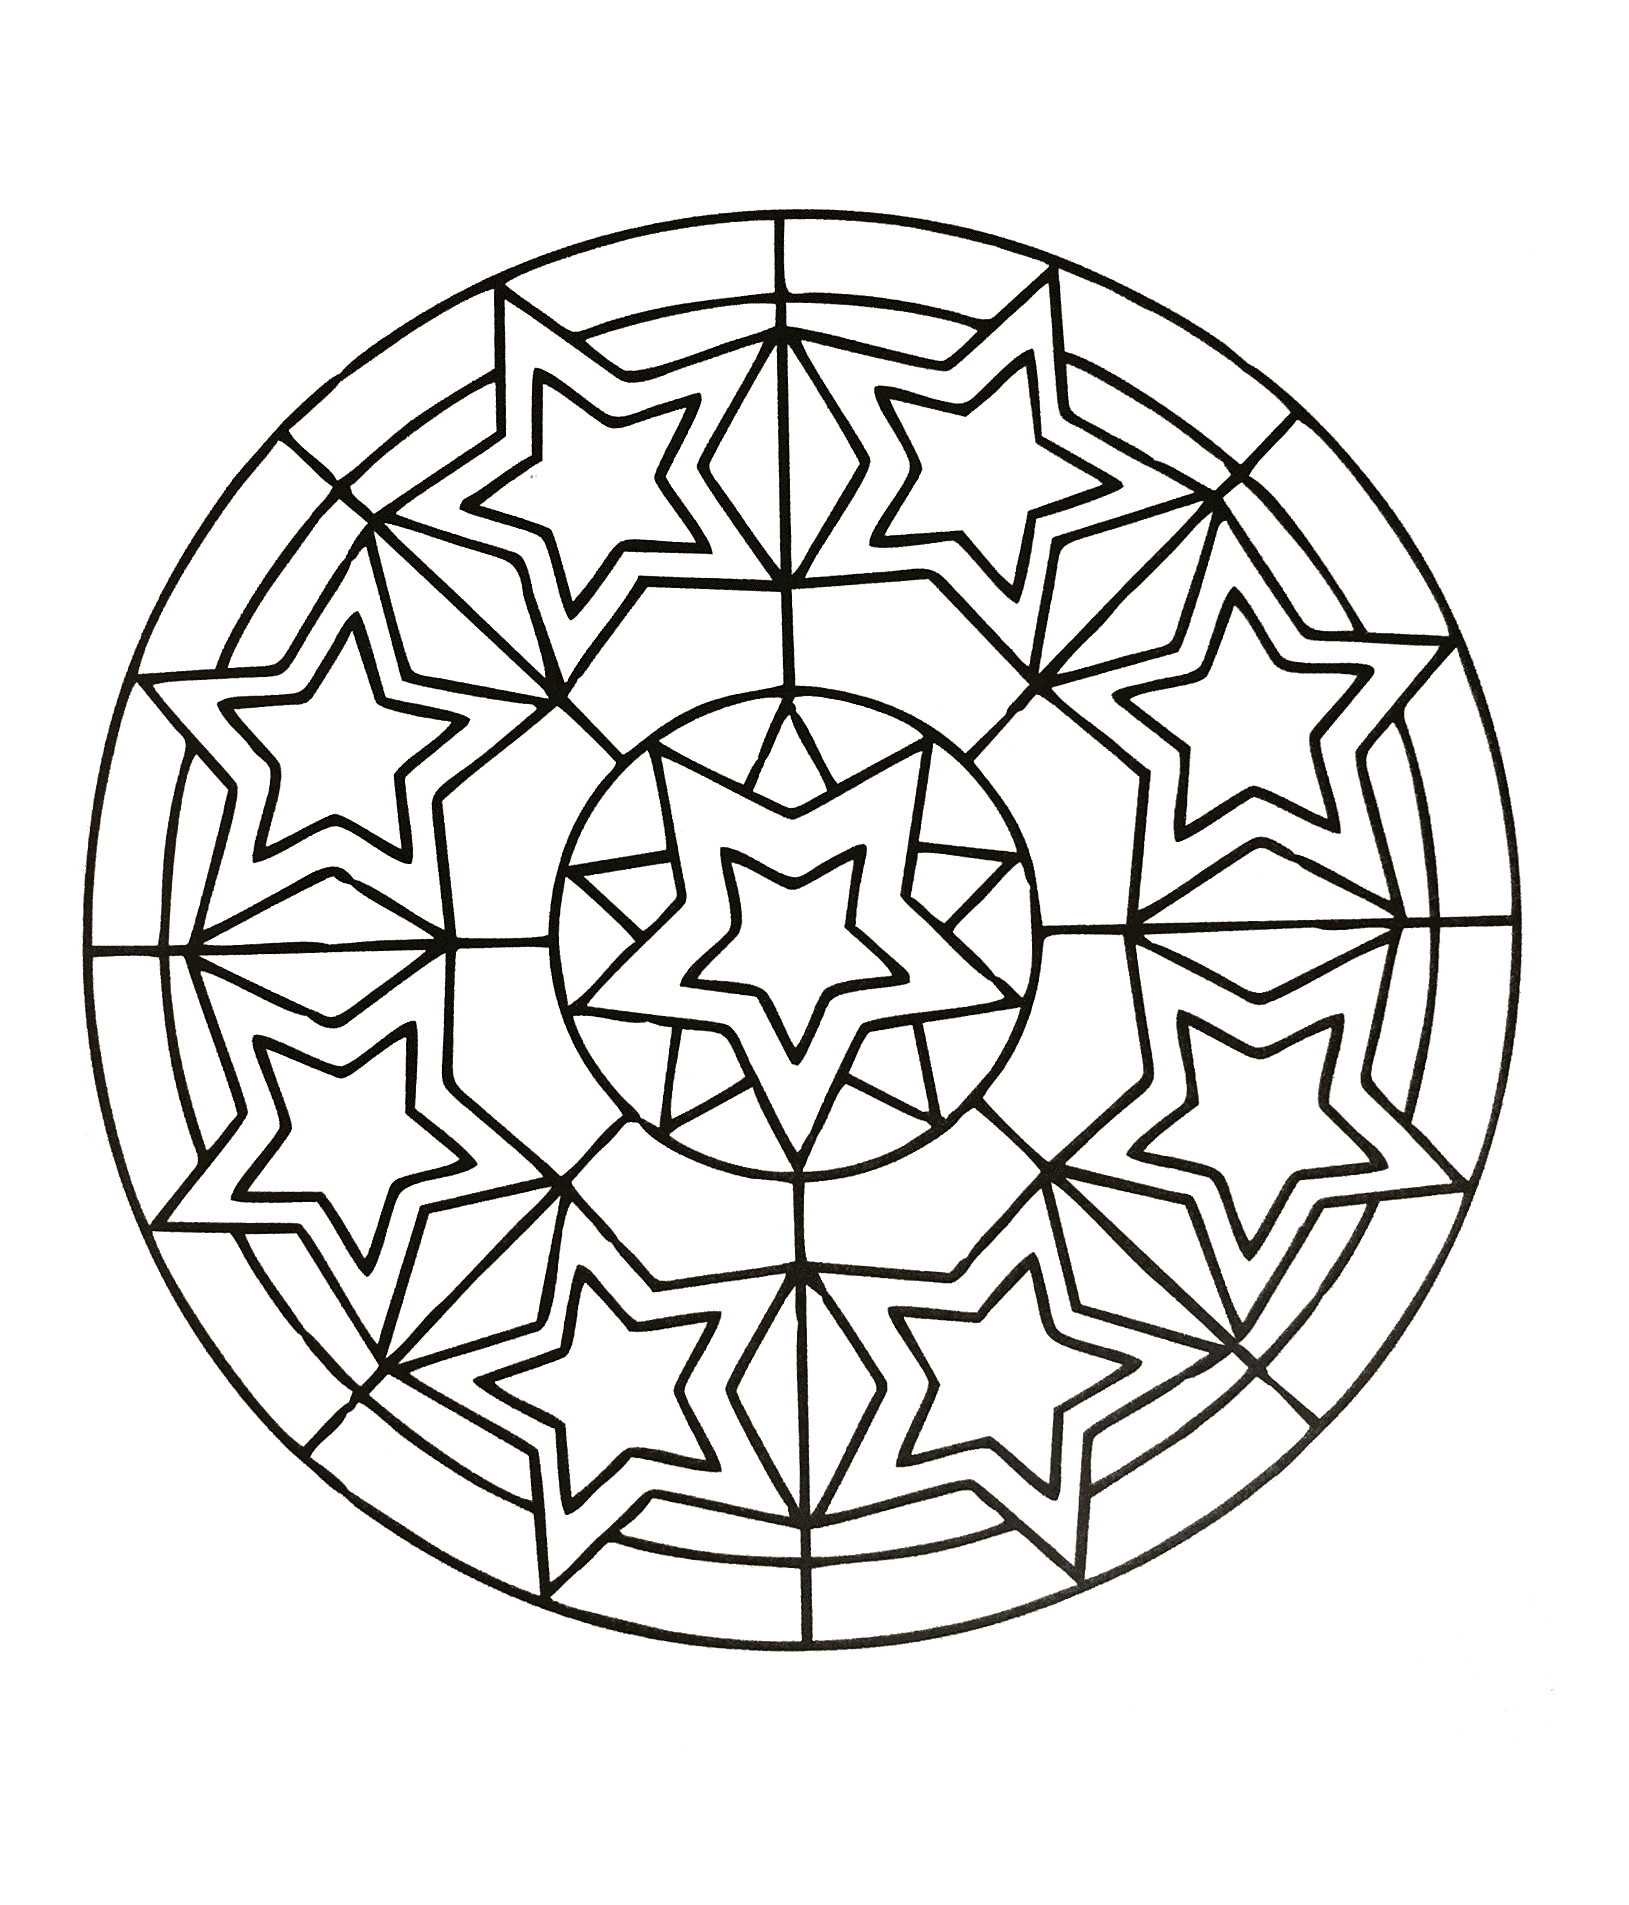 Mandalas for children - Mandalas - Coloring pages for kids